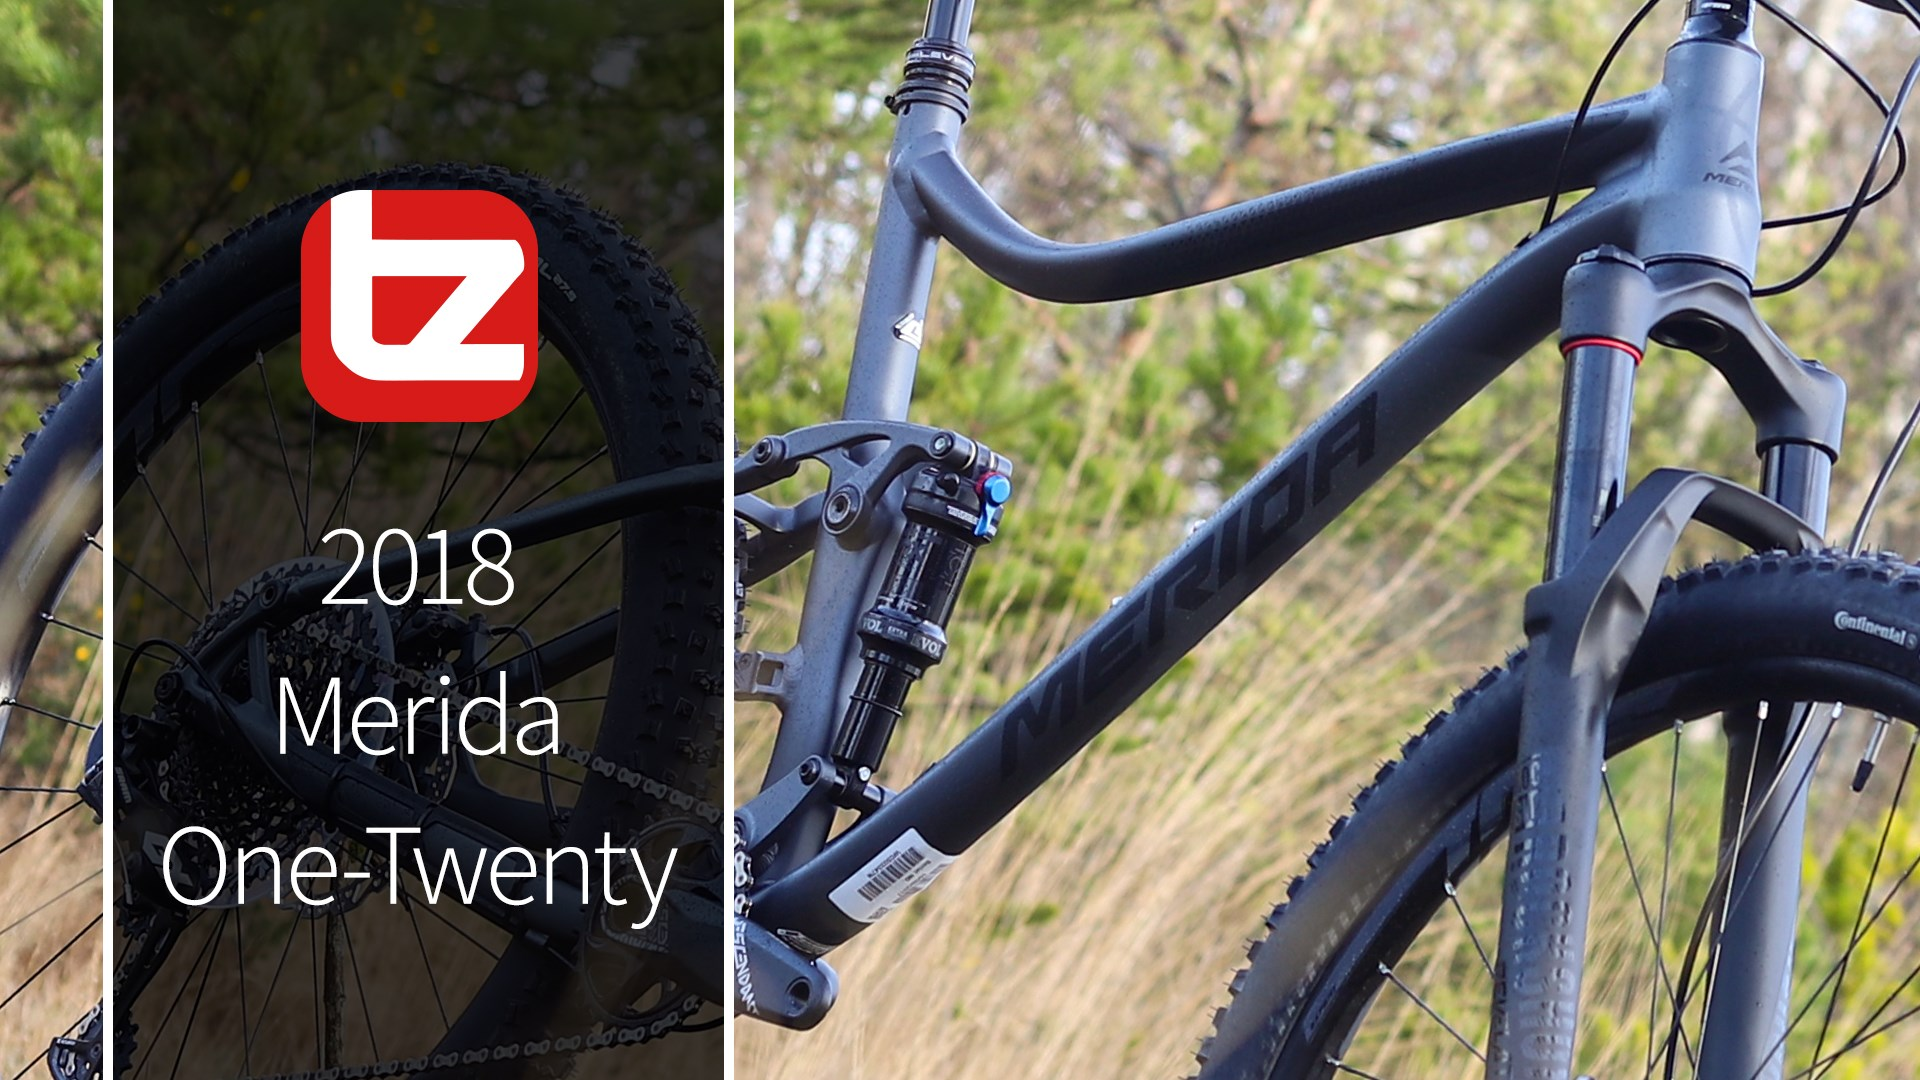 2018 Merida One-Twenty Range Review